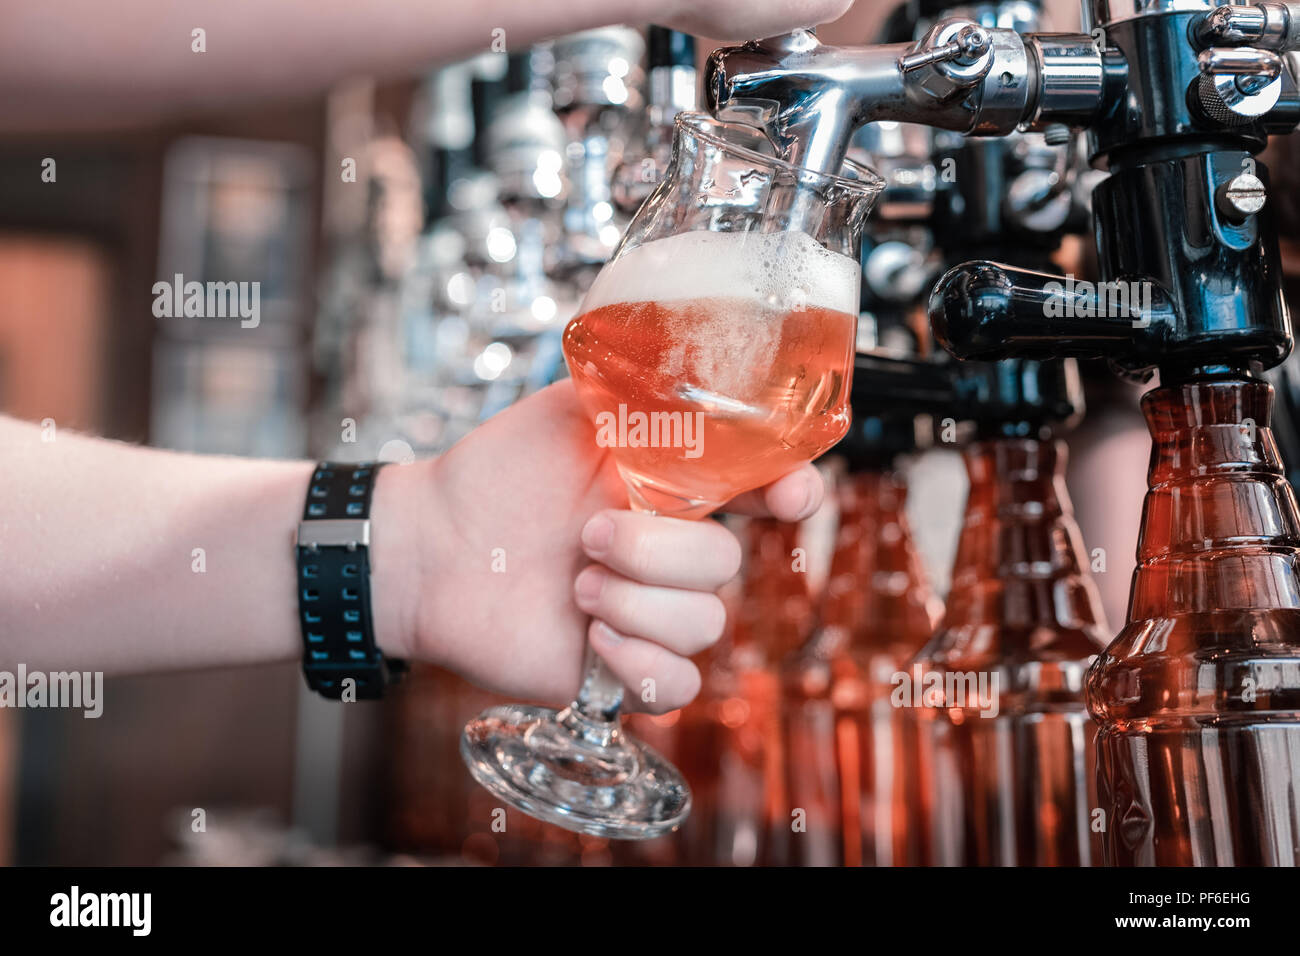 Barman holding glass while filling it with craft dark beer - Stock Image